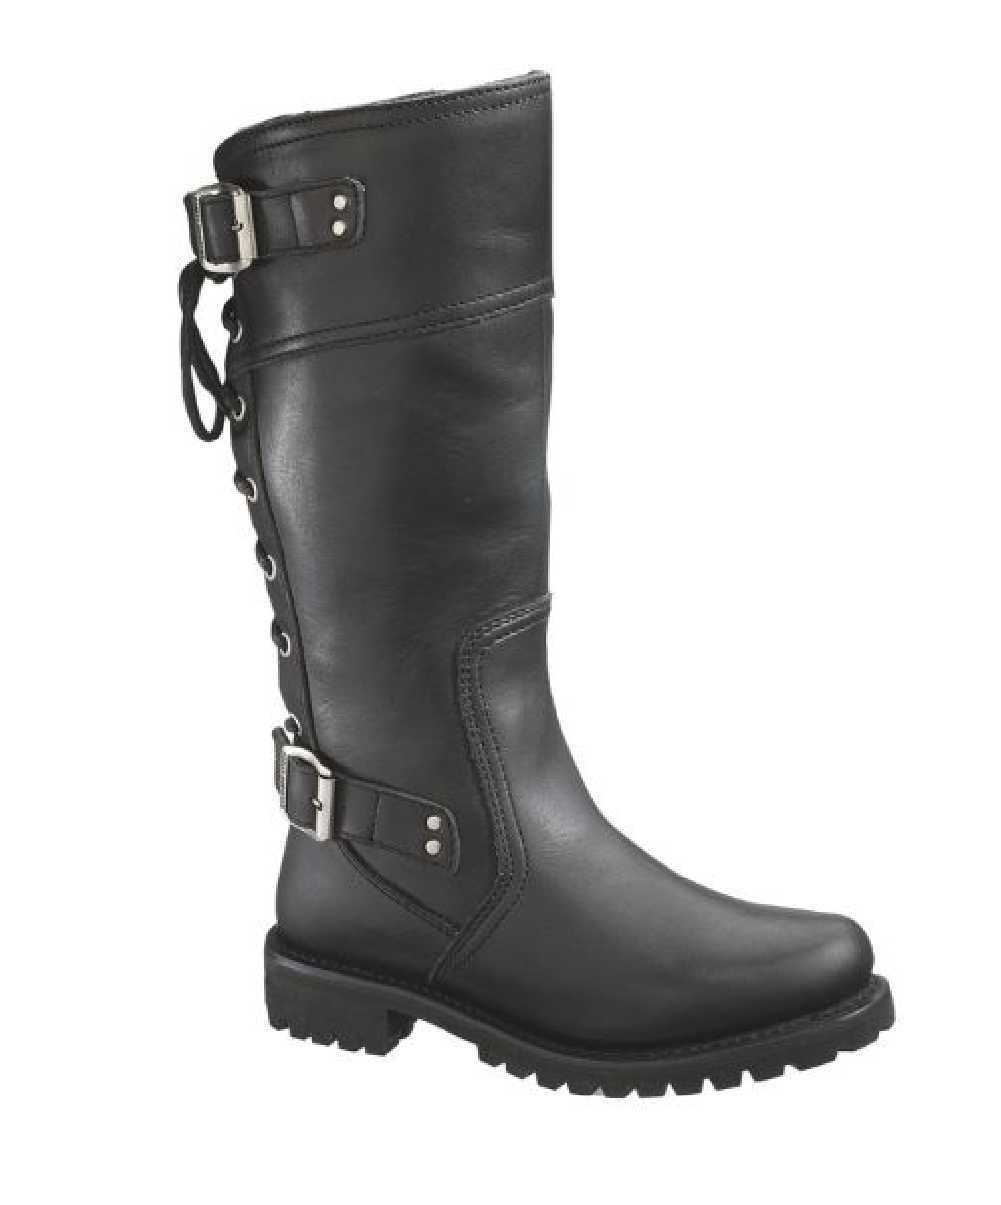 Harley-Davidson Women's Alexa Back Lace Black Leather Motorcycle Boots D85167